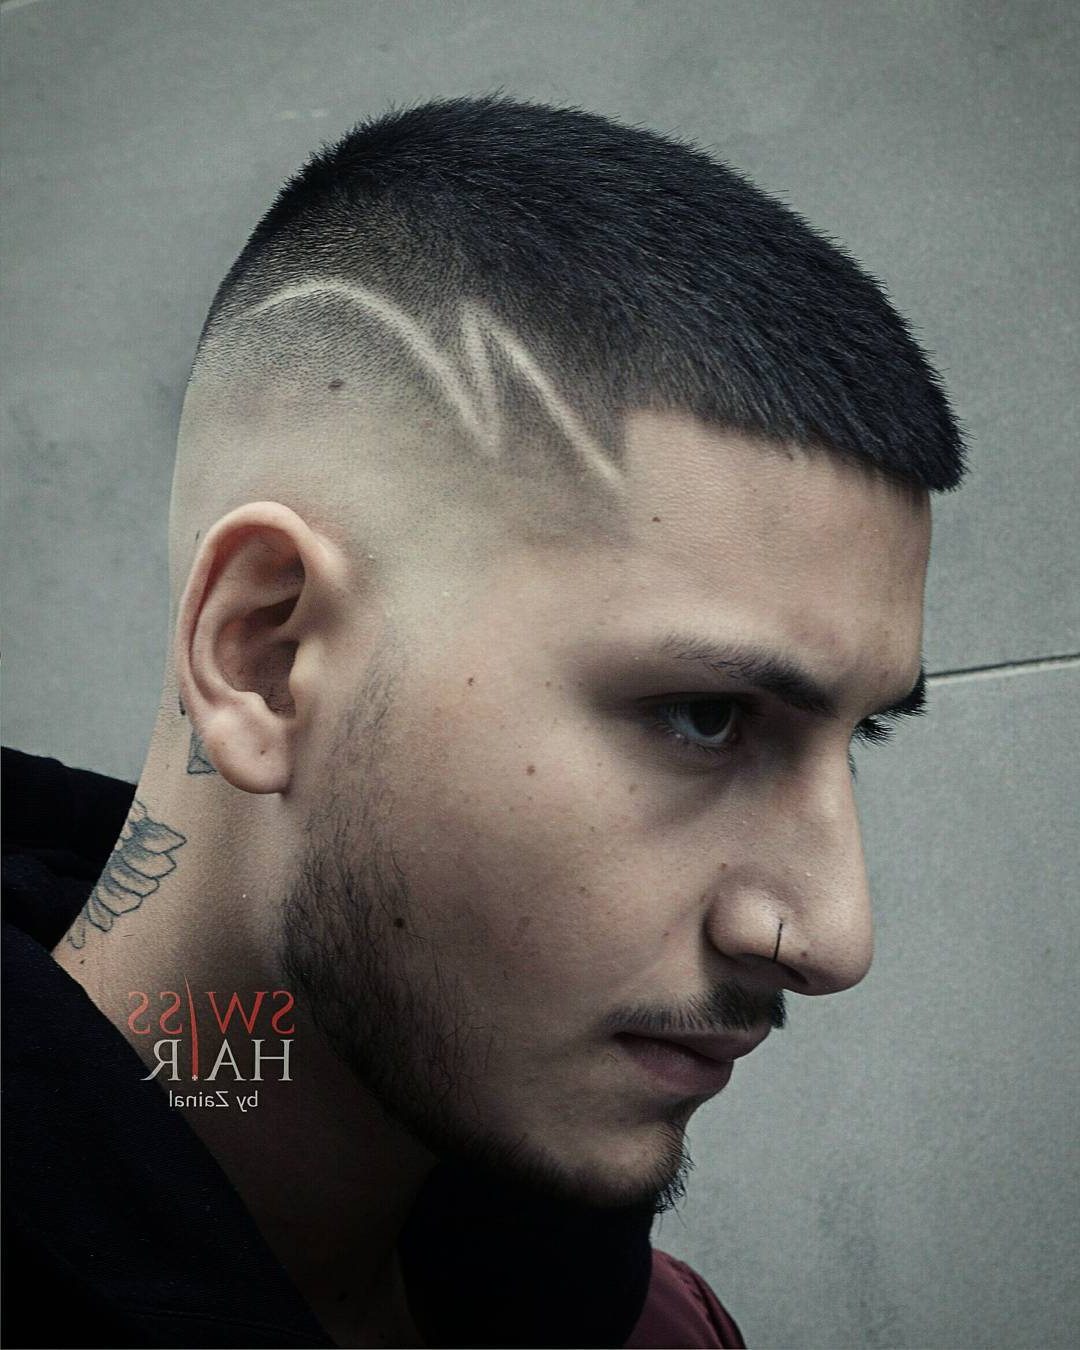 100+ Hairstyles For Men With Short Hair – Men's Hairstyles With Regard To Short Haircuts For Women With Big Ears (View 20 of 25)